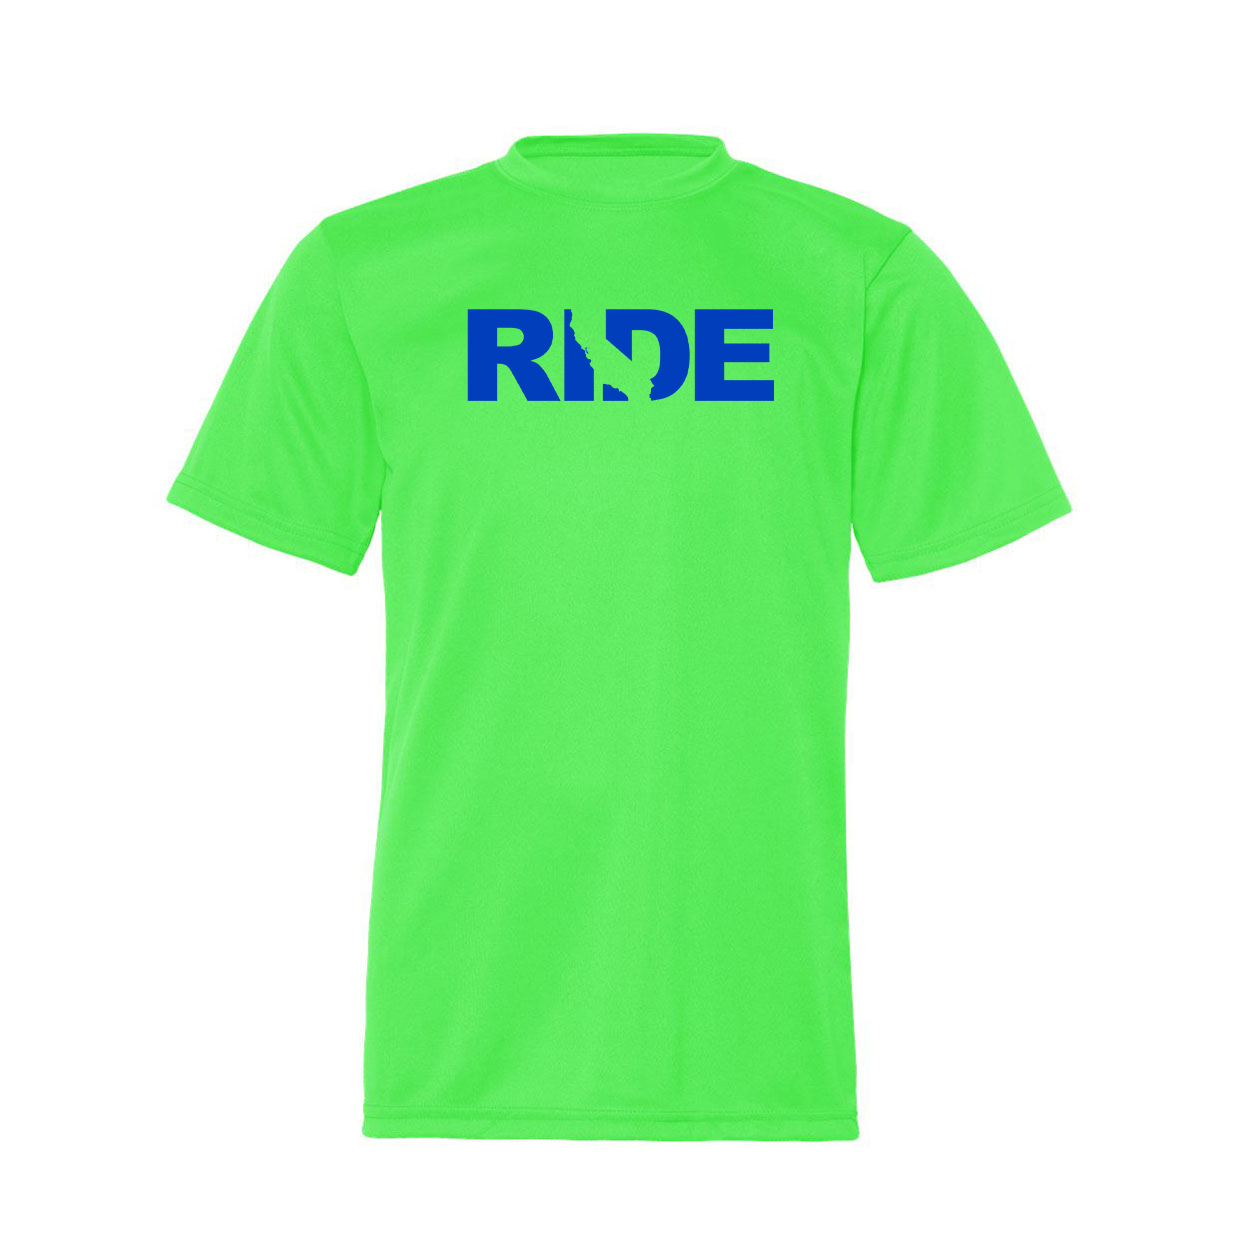 Ride California Classic Youth Unisex Performance T-Shirt Lime Green (Blue Logo)